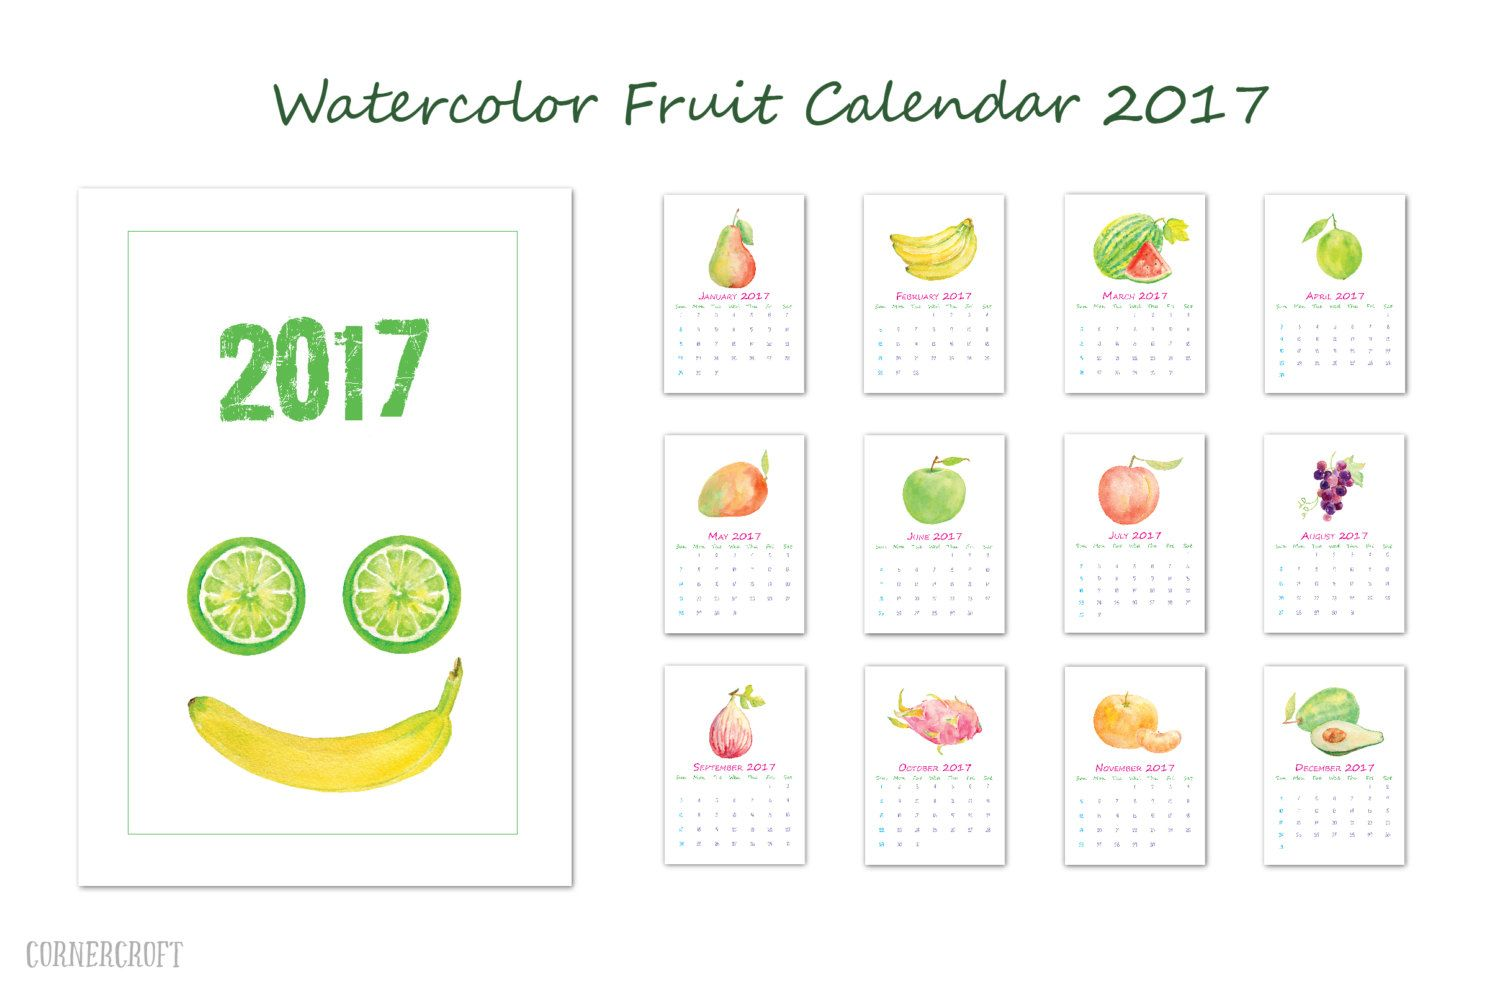 2017 Calendar printable - watercolor fruit monthly calendar - A4 digital  instant download scrapbook kitchen calendar by CornerCroft on Etsy